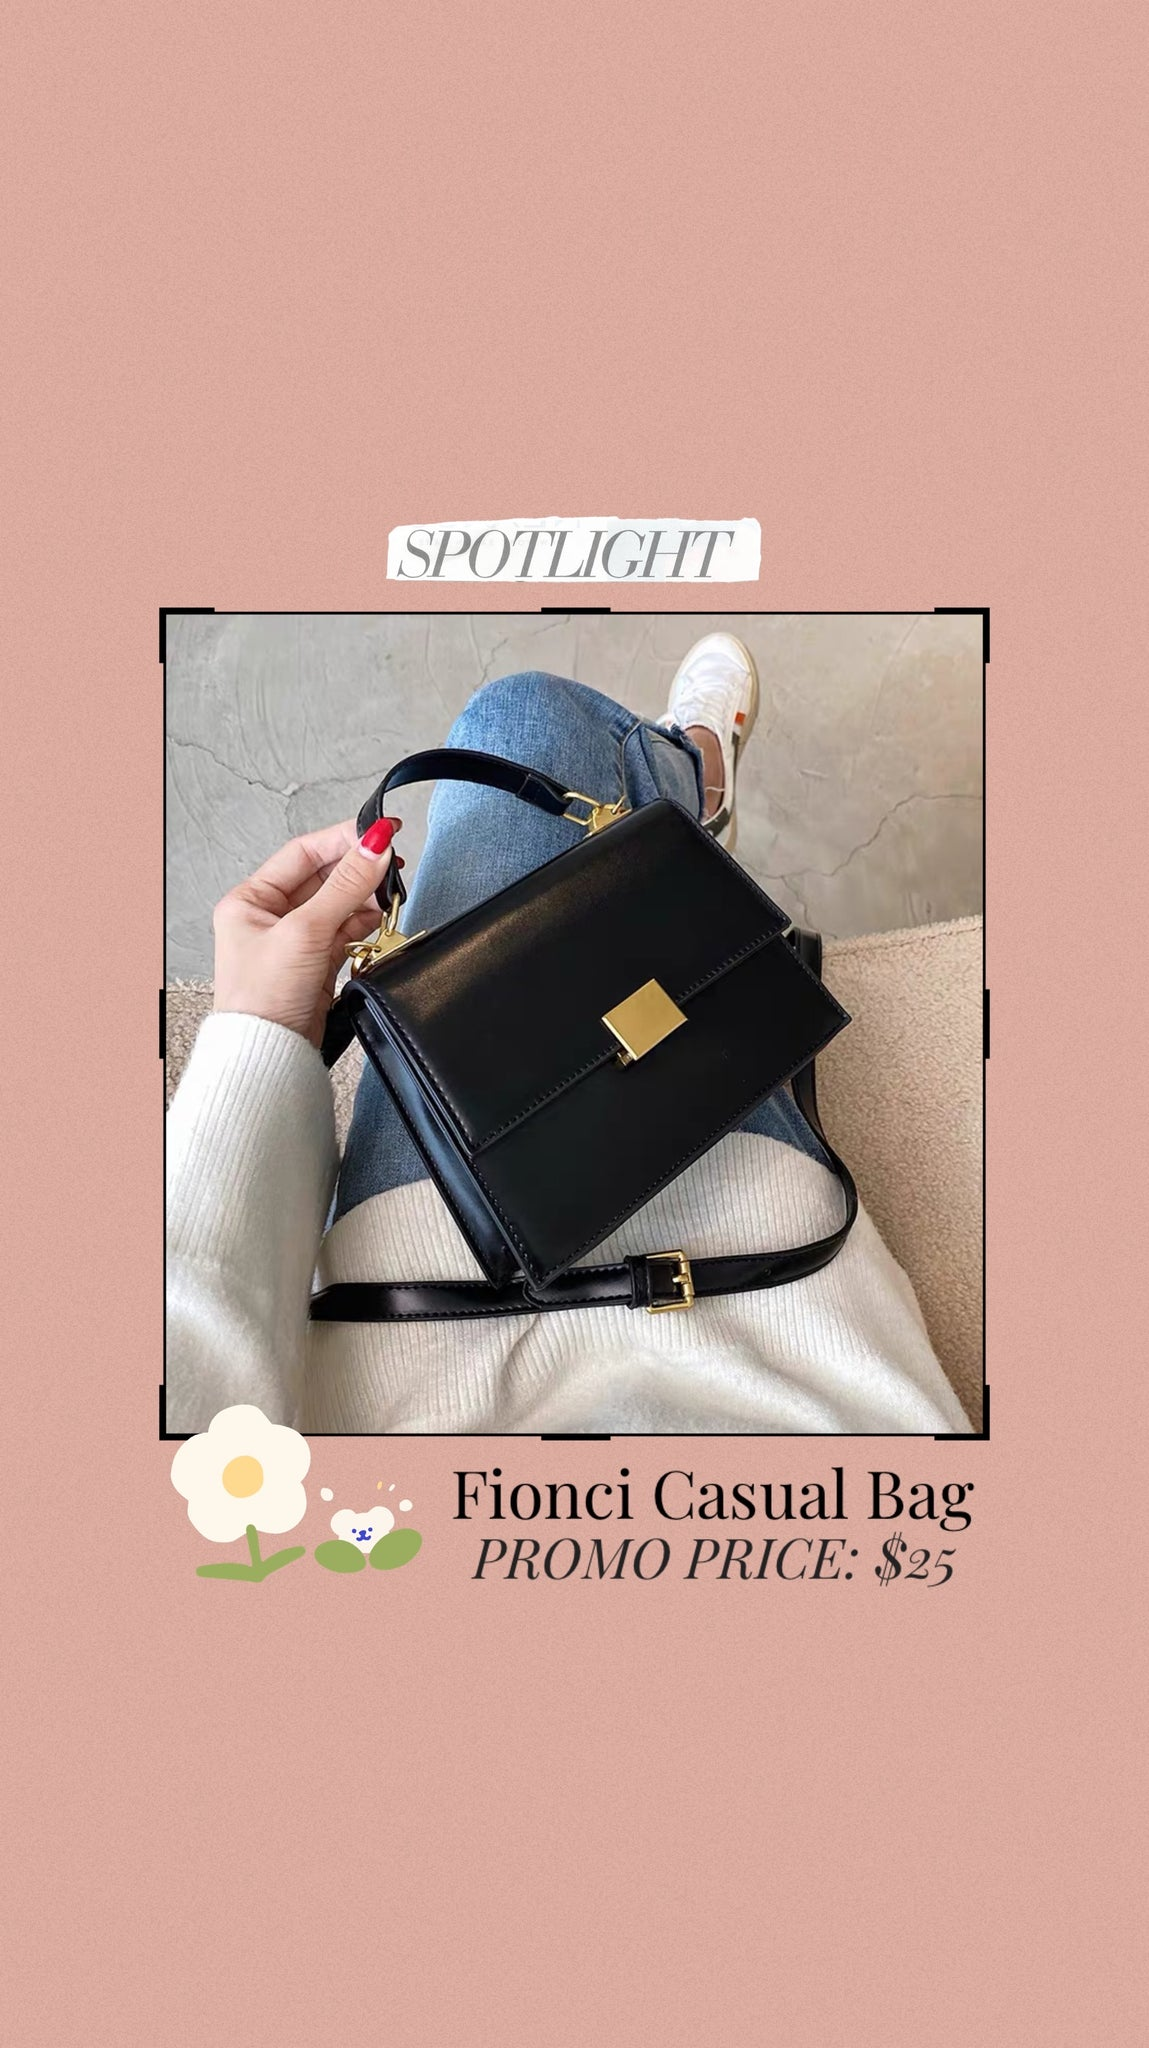 Fionci Casual Bag